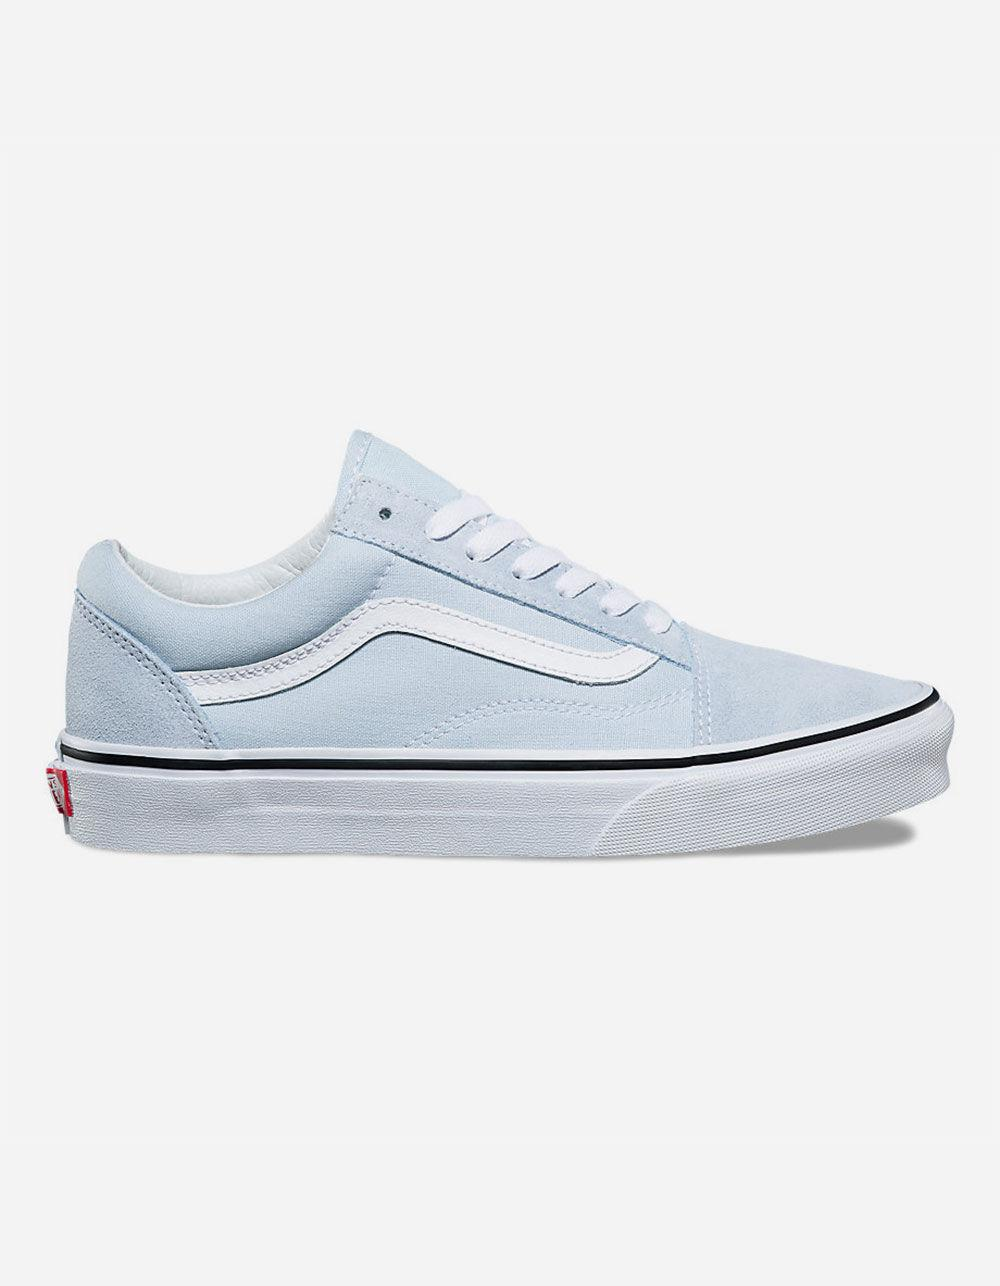 49c7c43b3f4d7d Lyst - Vans Old Skool Baby Blue   True White Womens Shoes in Blue